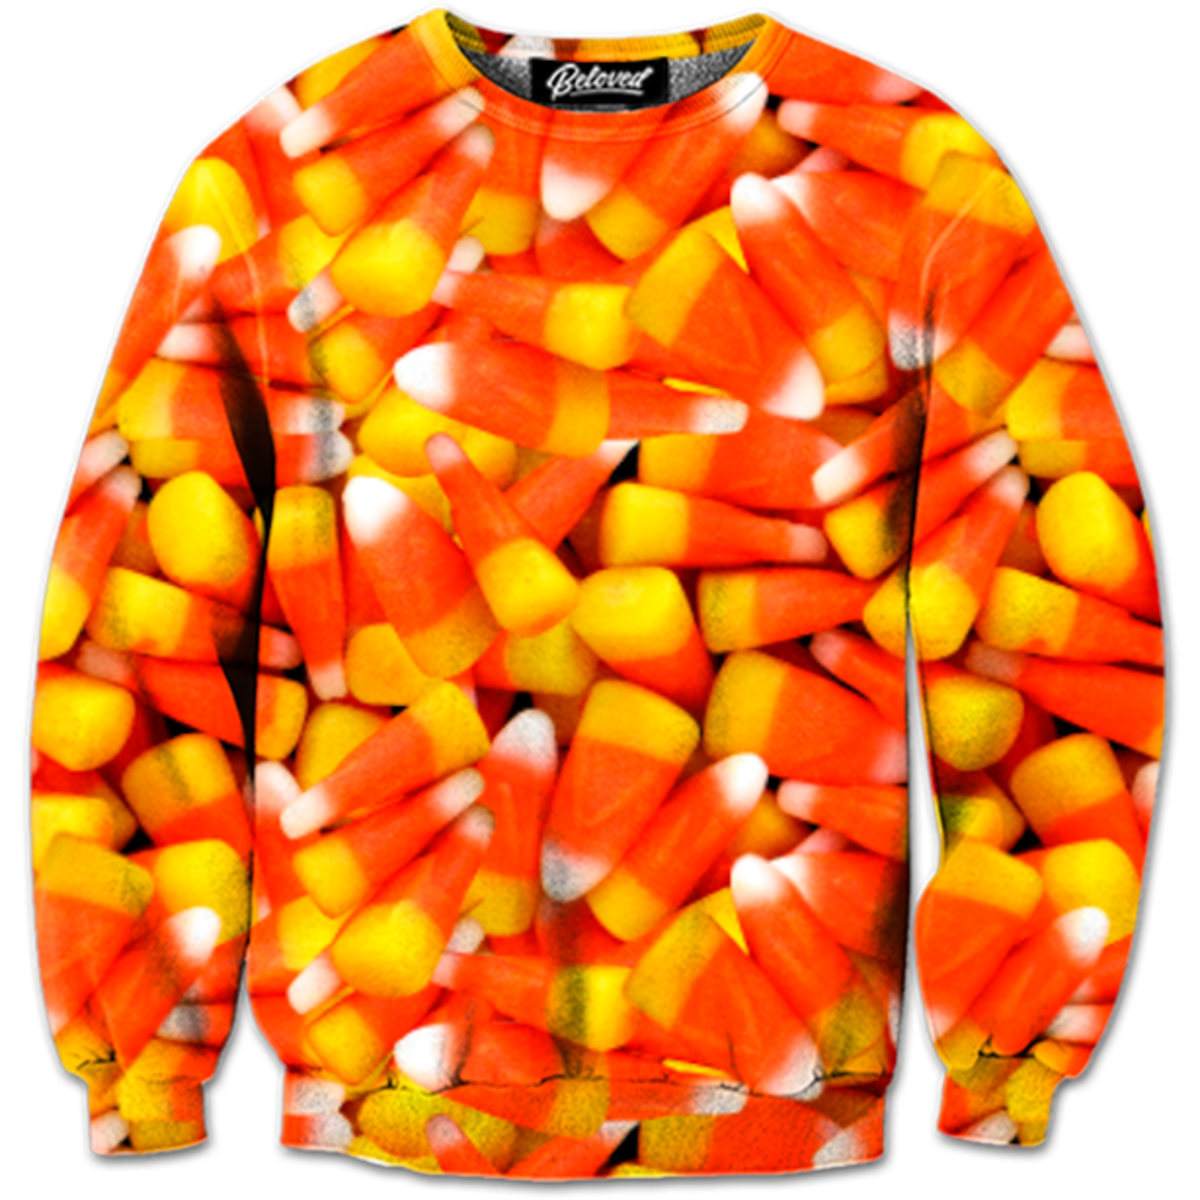 Fashion: 5 Essential Pieces For Your Halloween Clubbing